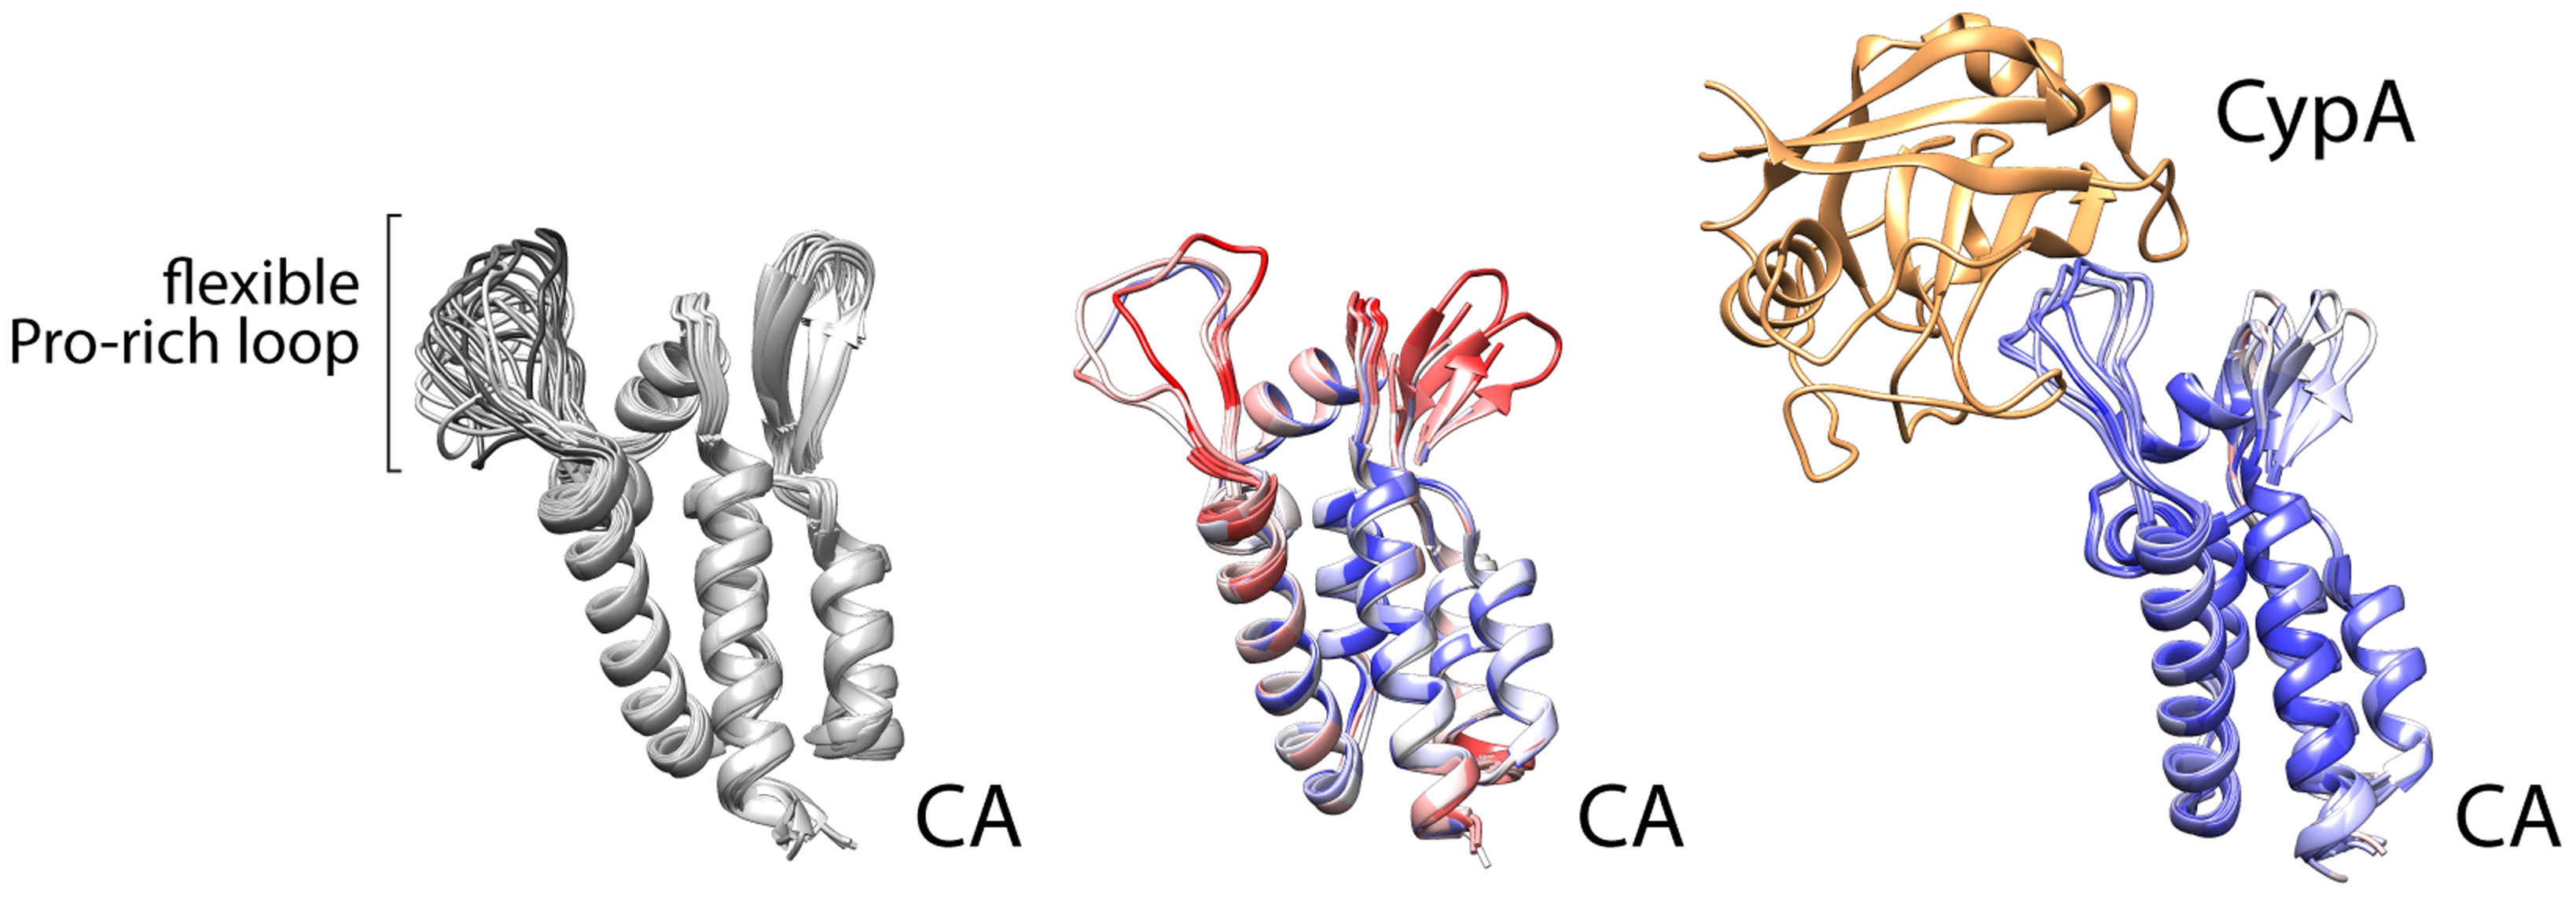 Cyclophilin A binds a flexible loop in the HIV CA, containing glycine 89 and proline 90 and flanked by prolines.